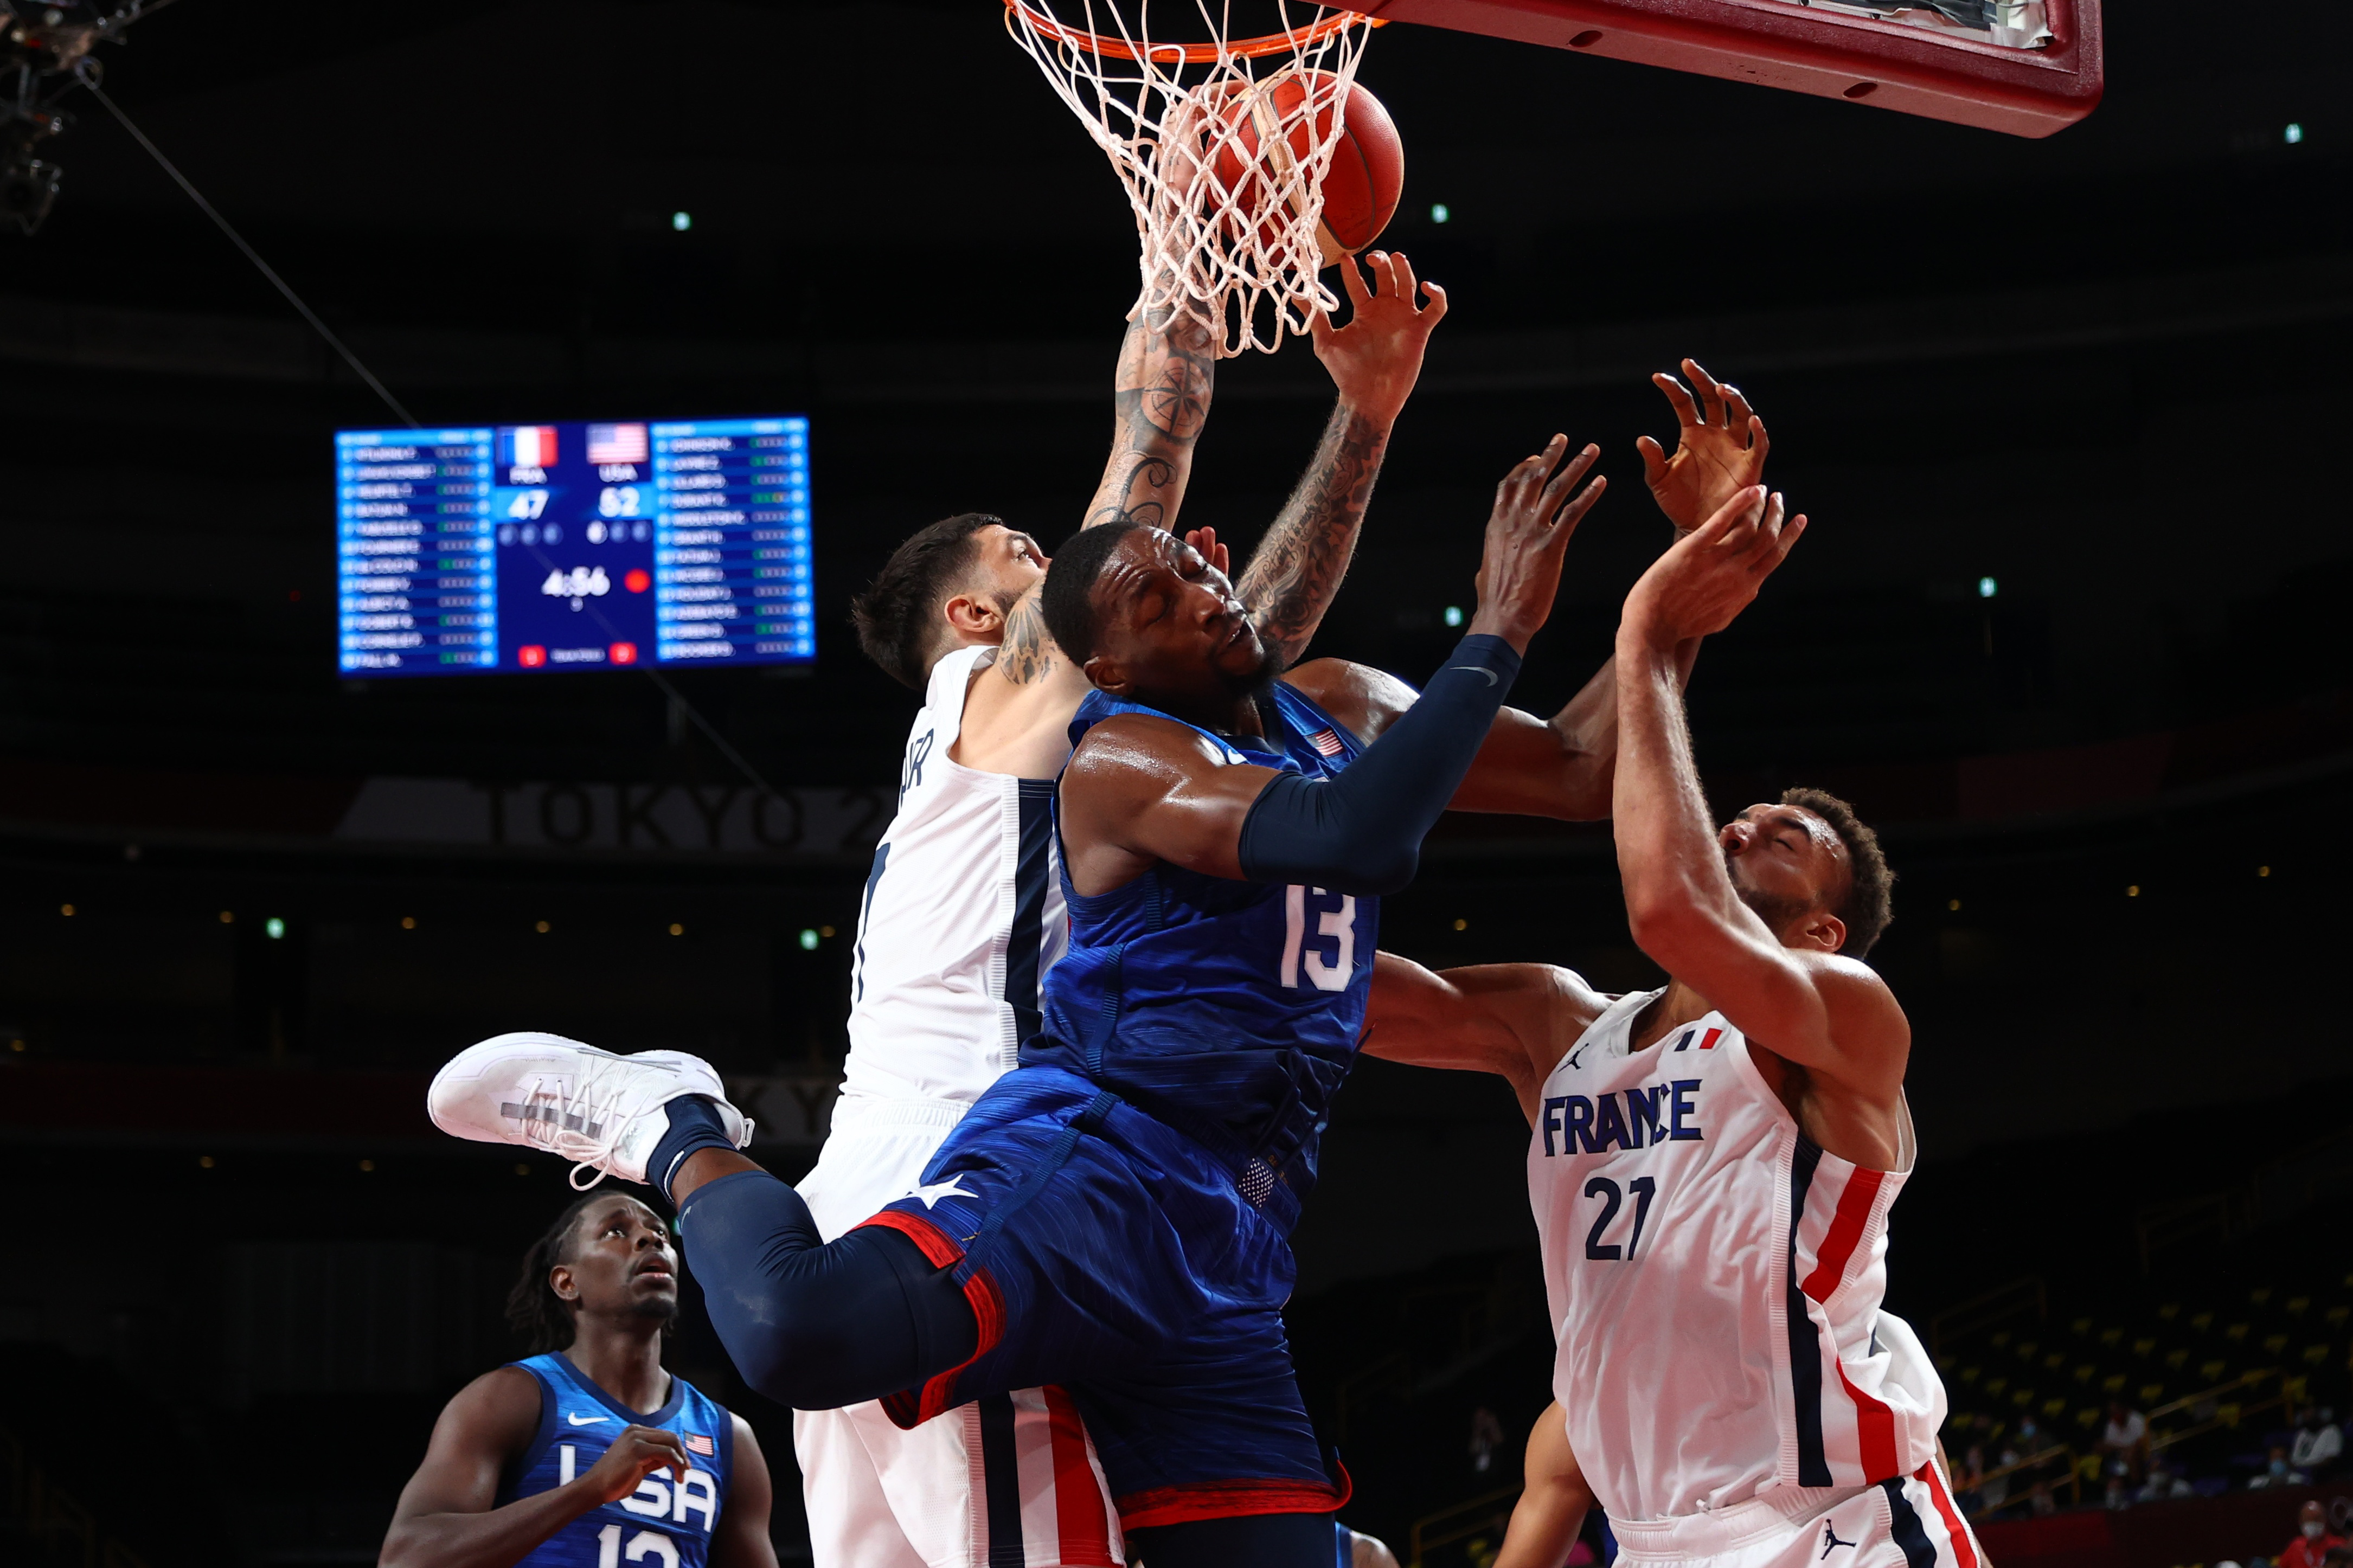 Tokyo 2020 Olympics - Basketball - Men - Group A - France v United States - Saitama Super Arena, Saitama, Japan - July 25, 2021. Edrice Adebayo of the United States in action at the rim with Rudy Gobert of France and Vincent Poirier of France REUTERS/Brian Snyder